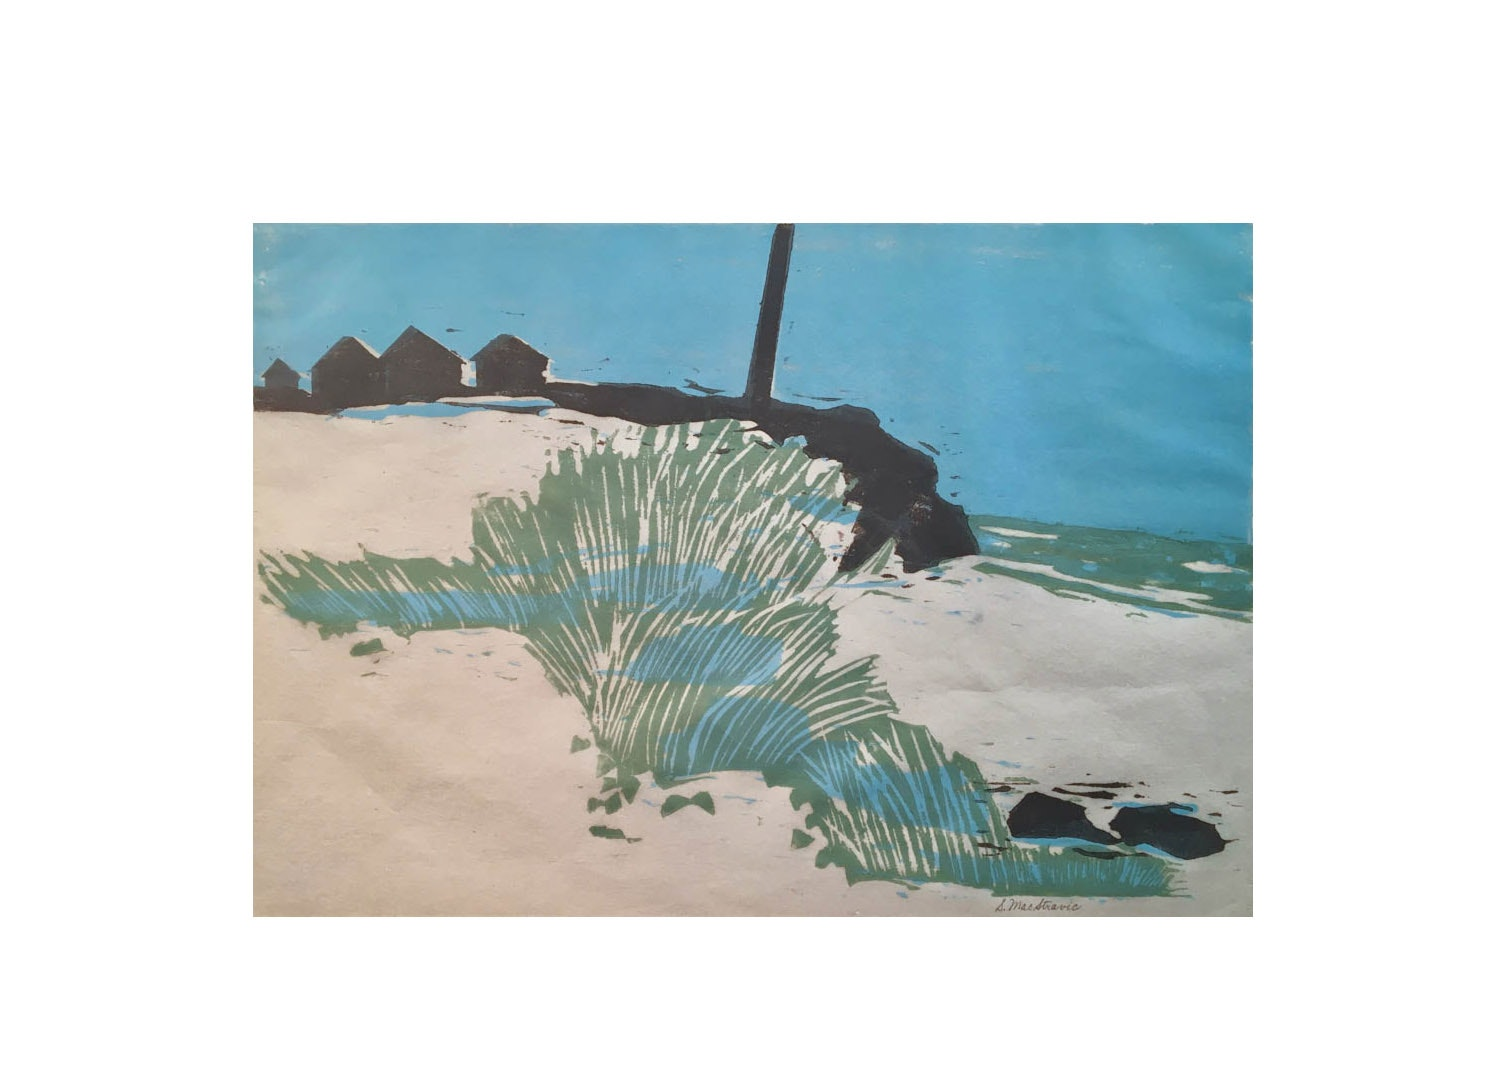 Sunny Cove by S. MacStravic, 1970's